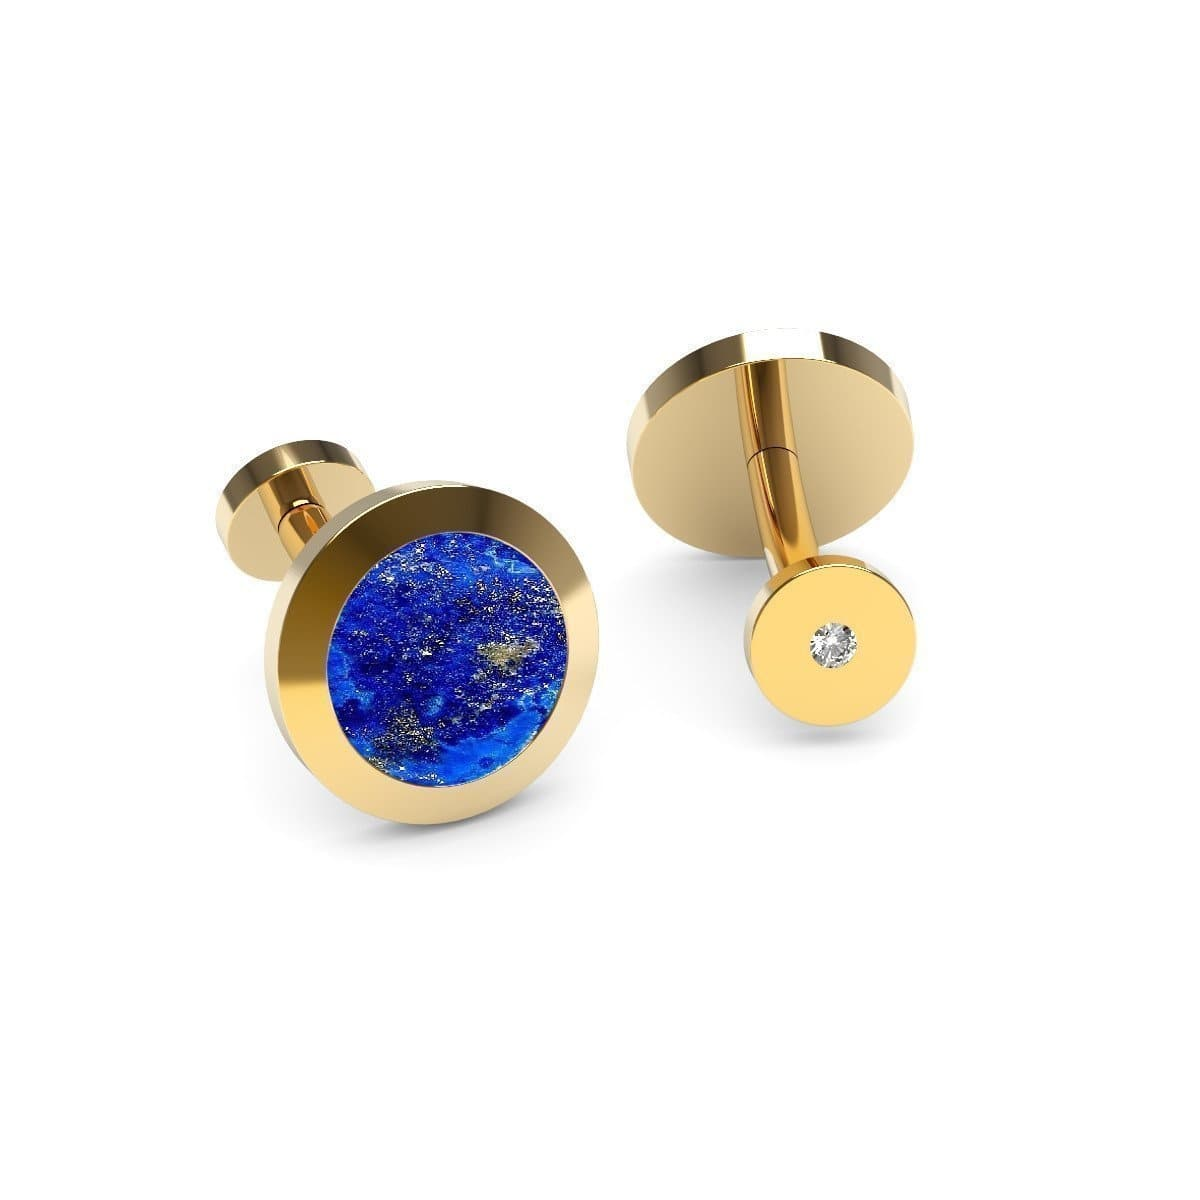 Rose Gold Plated Silver, Lapis Lazuli & Diamond Cufflinks